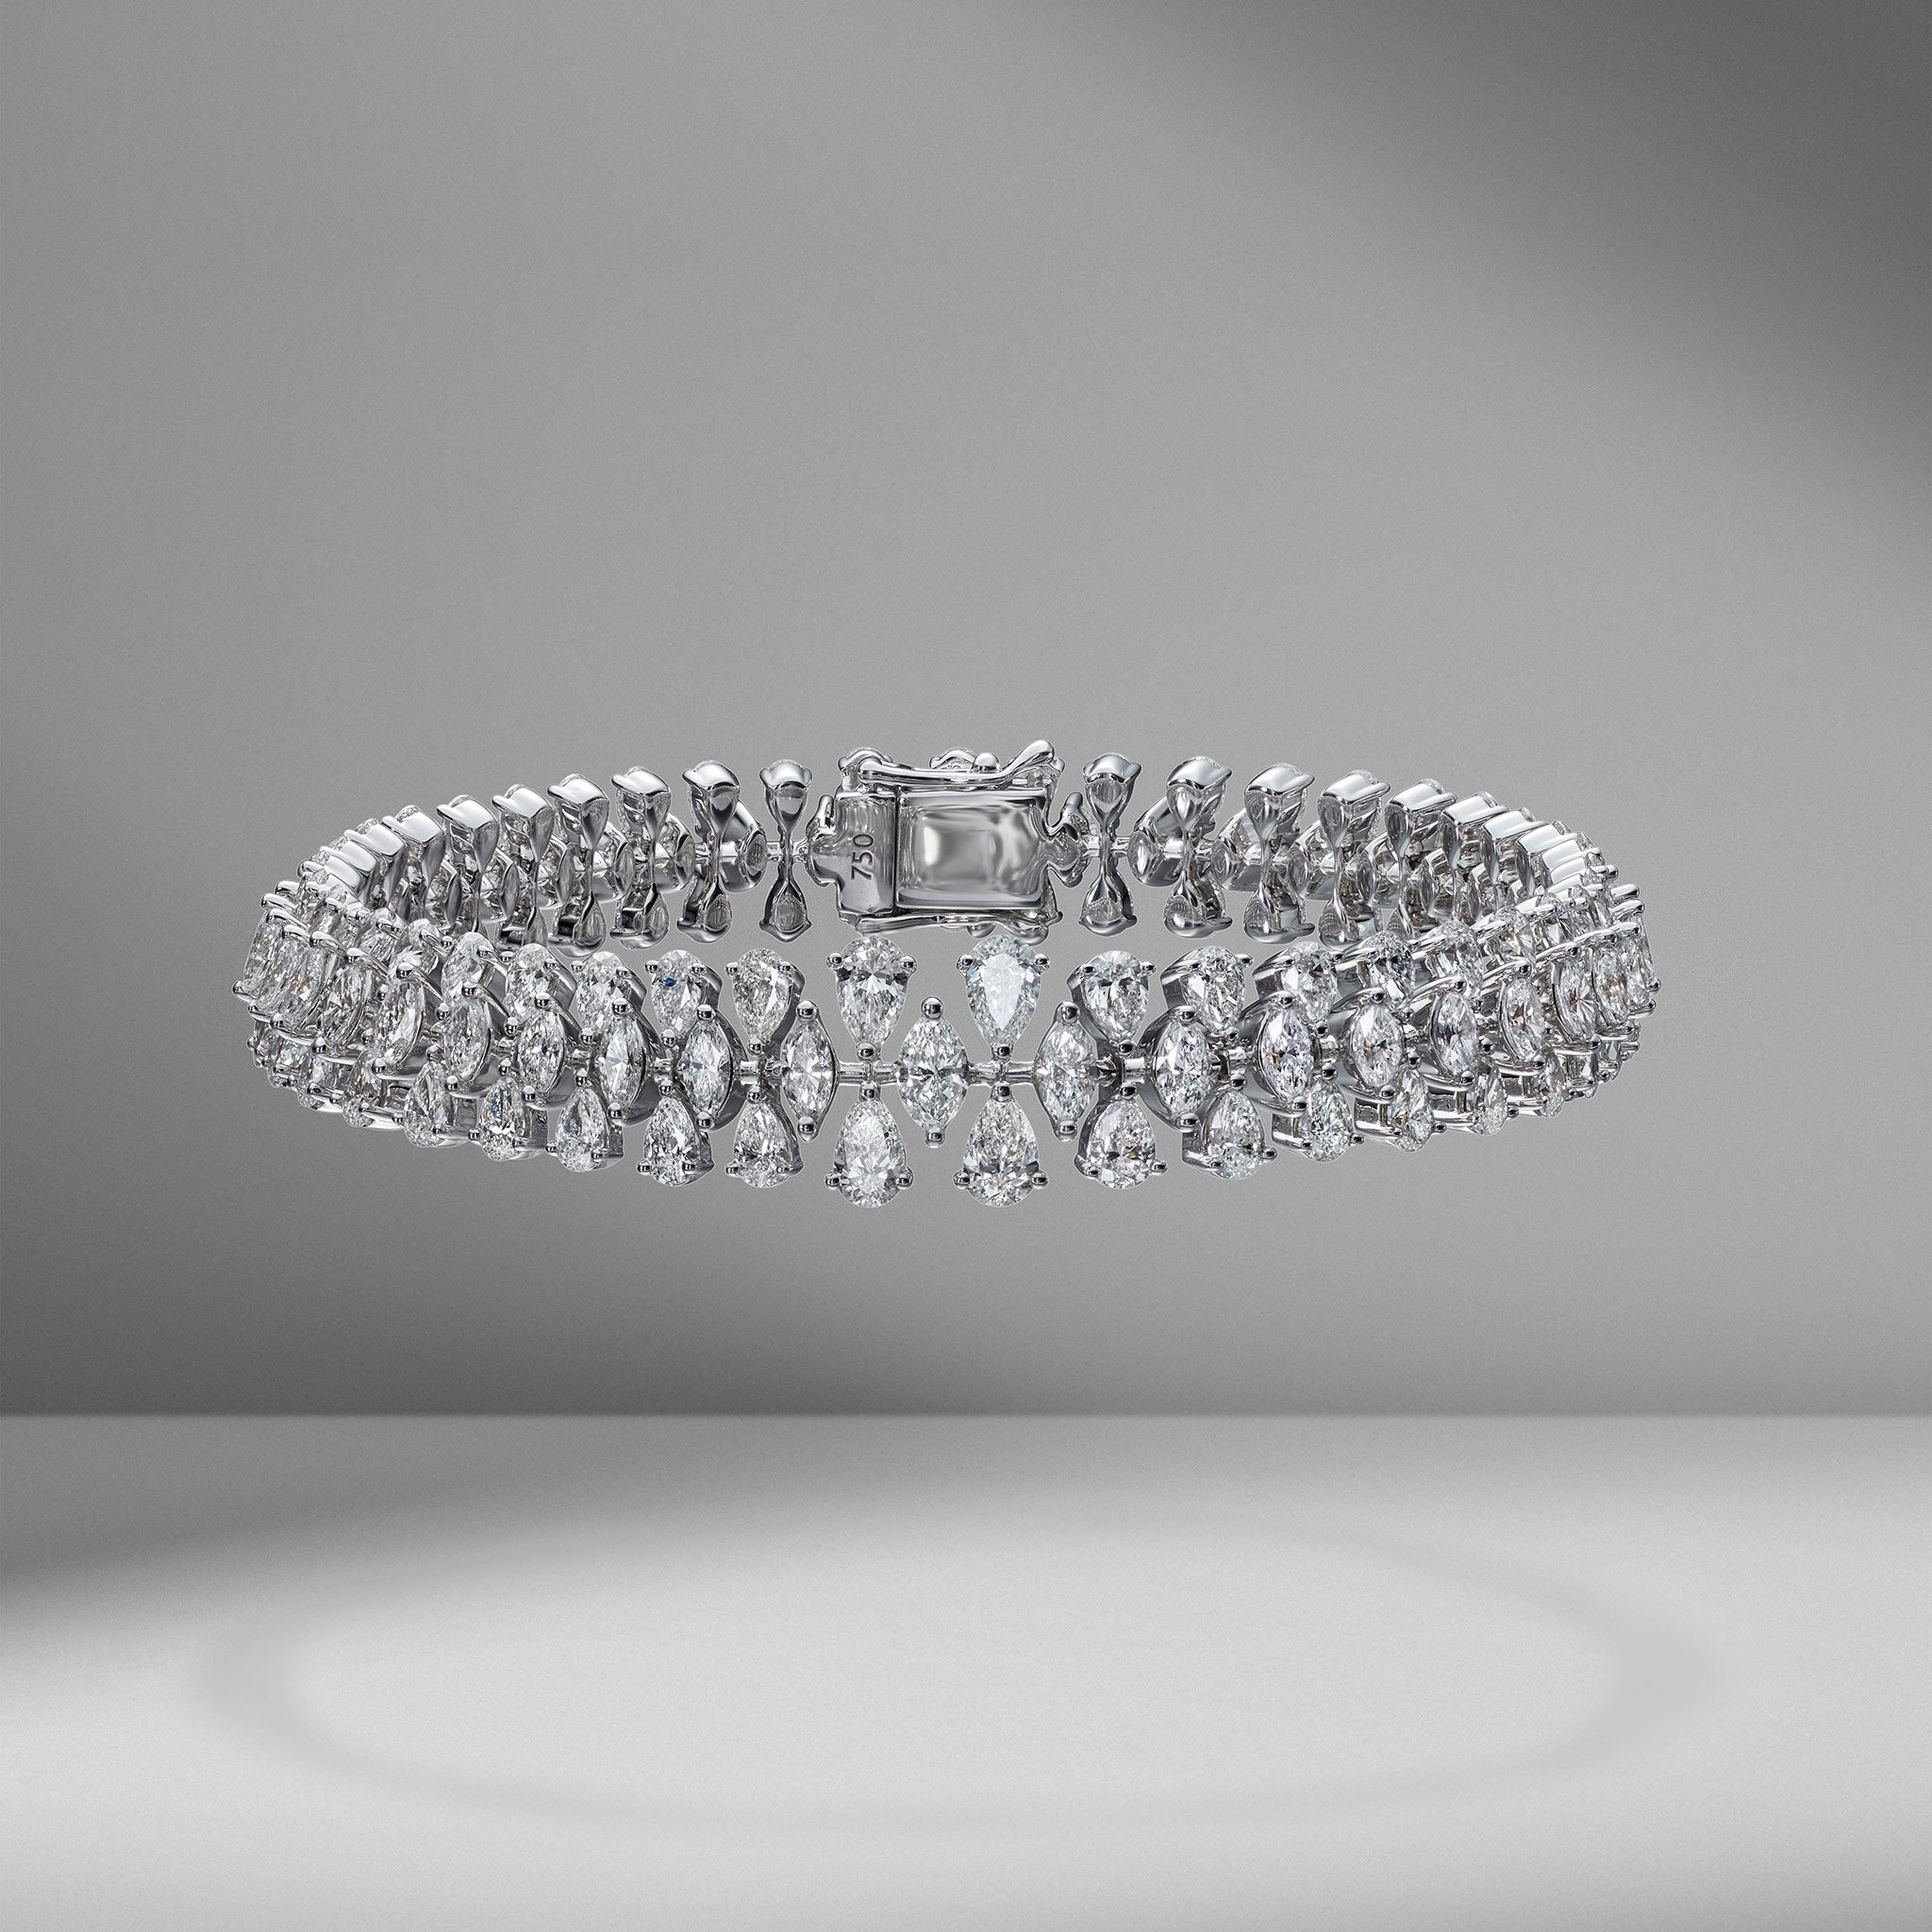 The Aurelie Diamond Bracelet